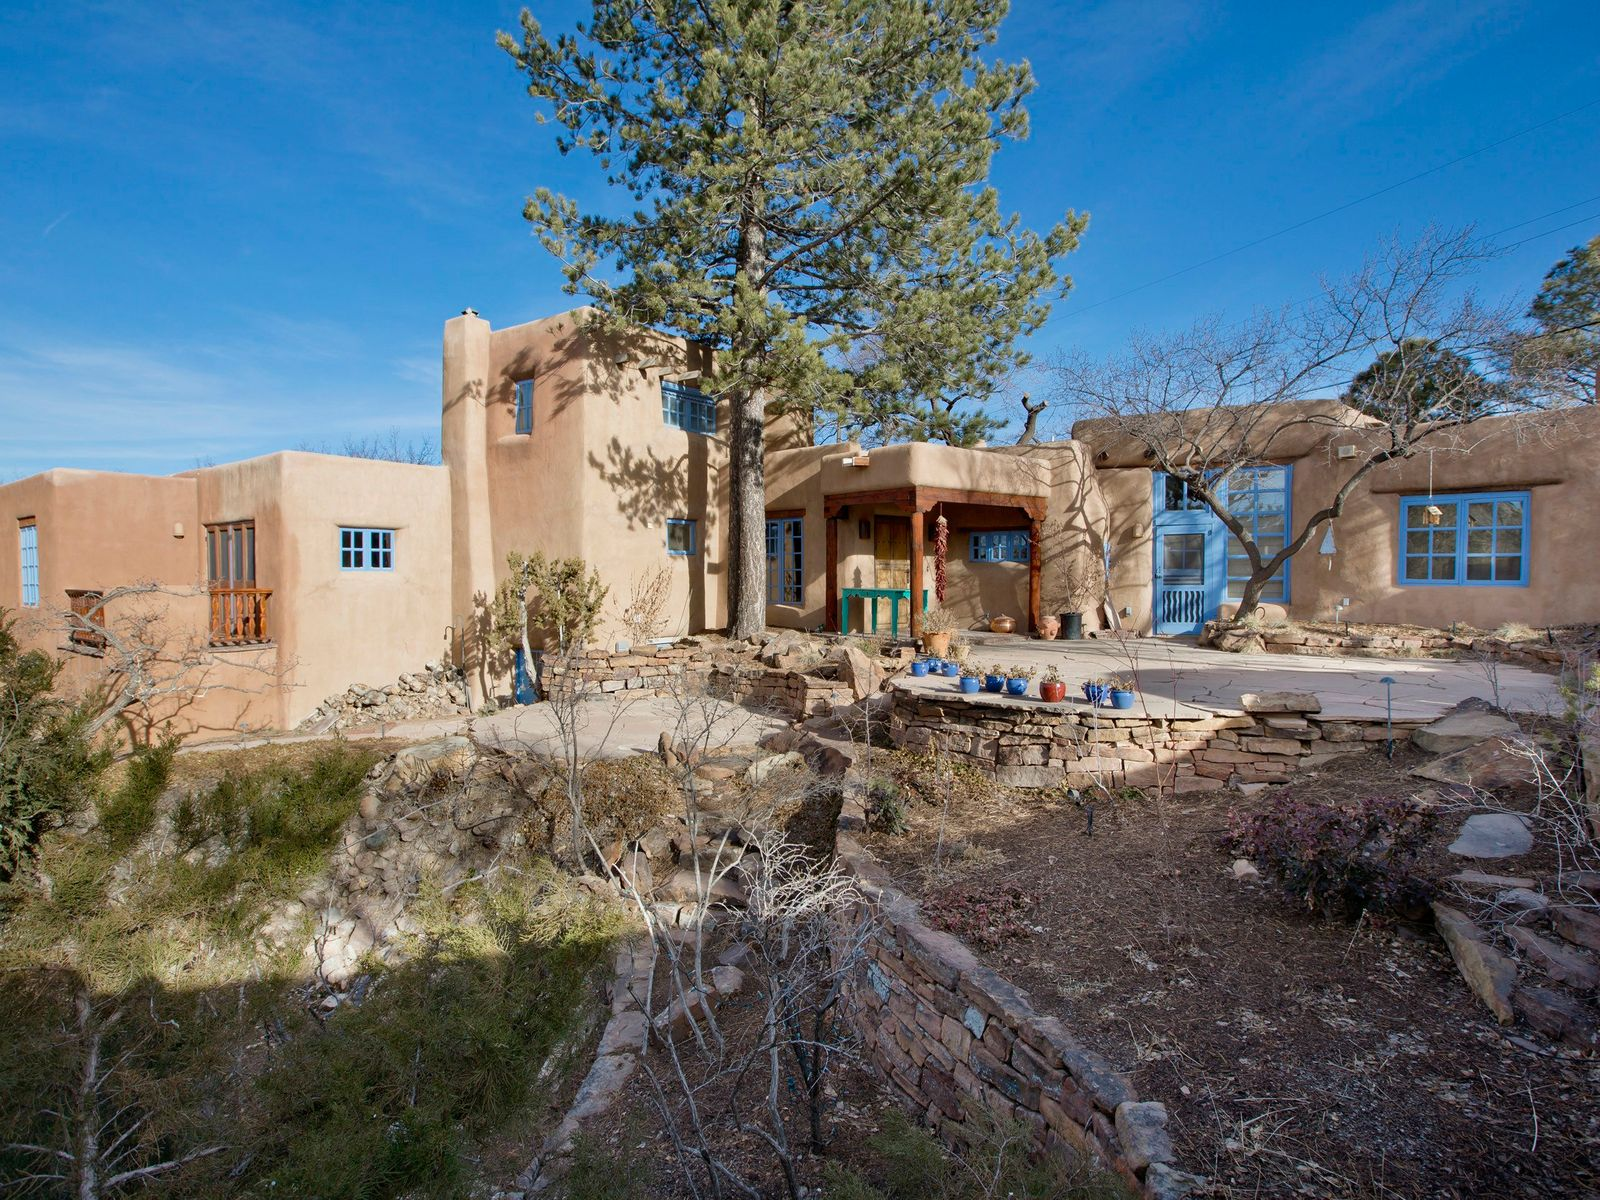 586 Camino Del Monte Sol, Santa Fe NM Single Family Home - Santa Fe Real Estate